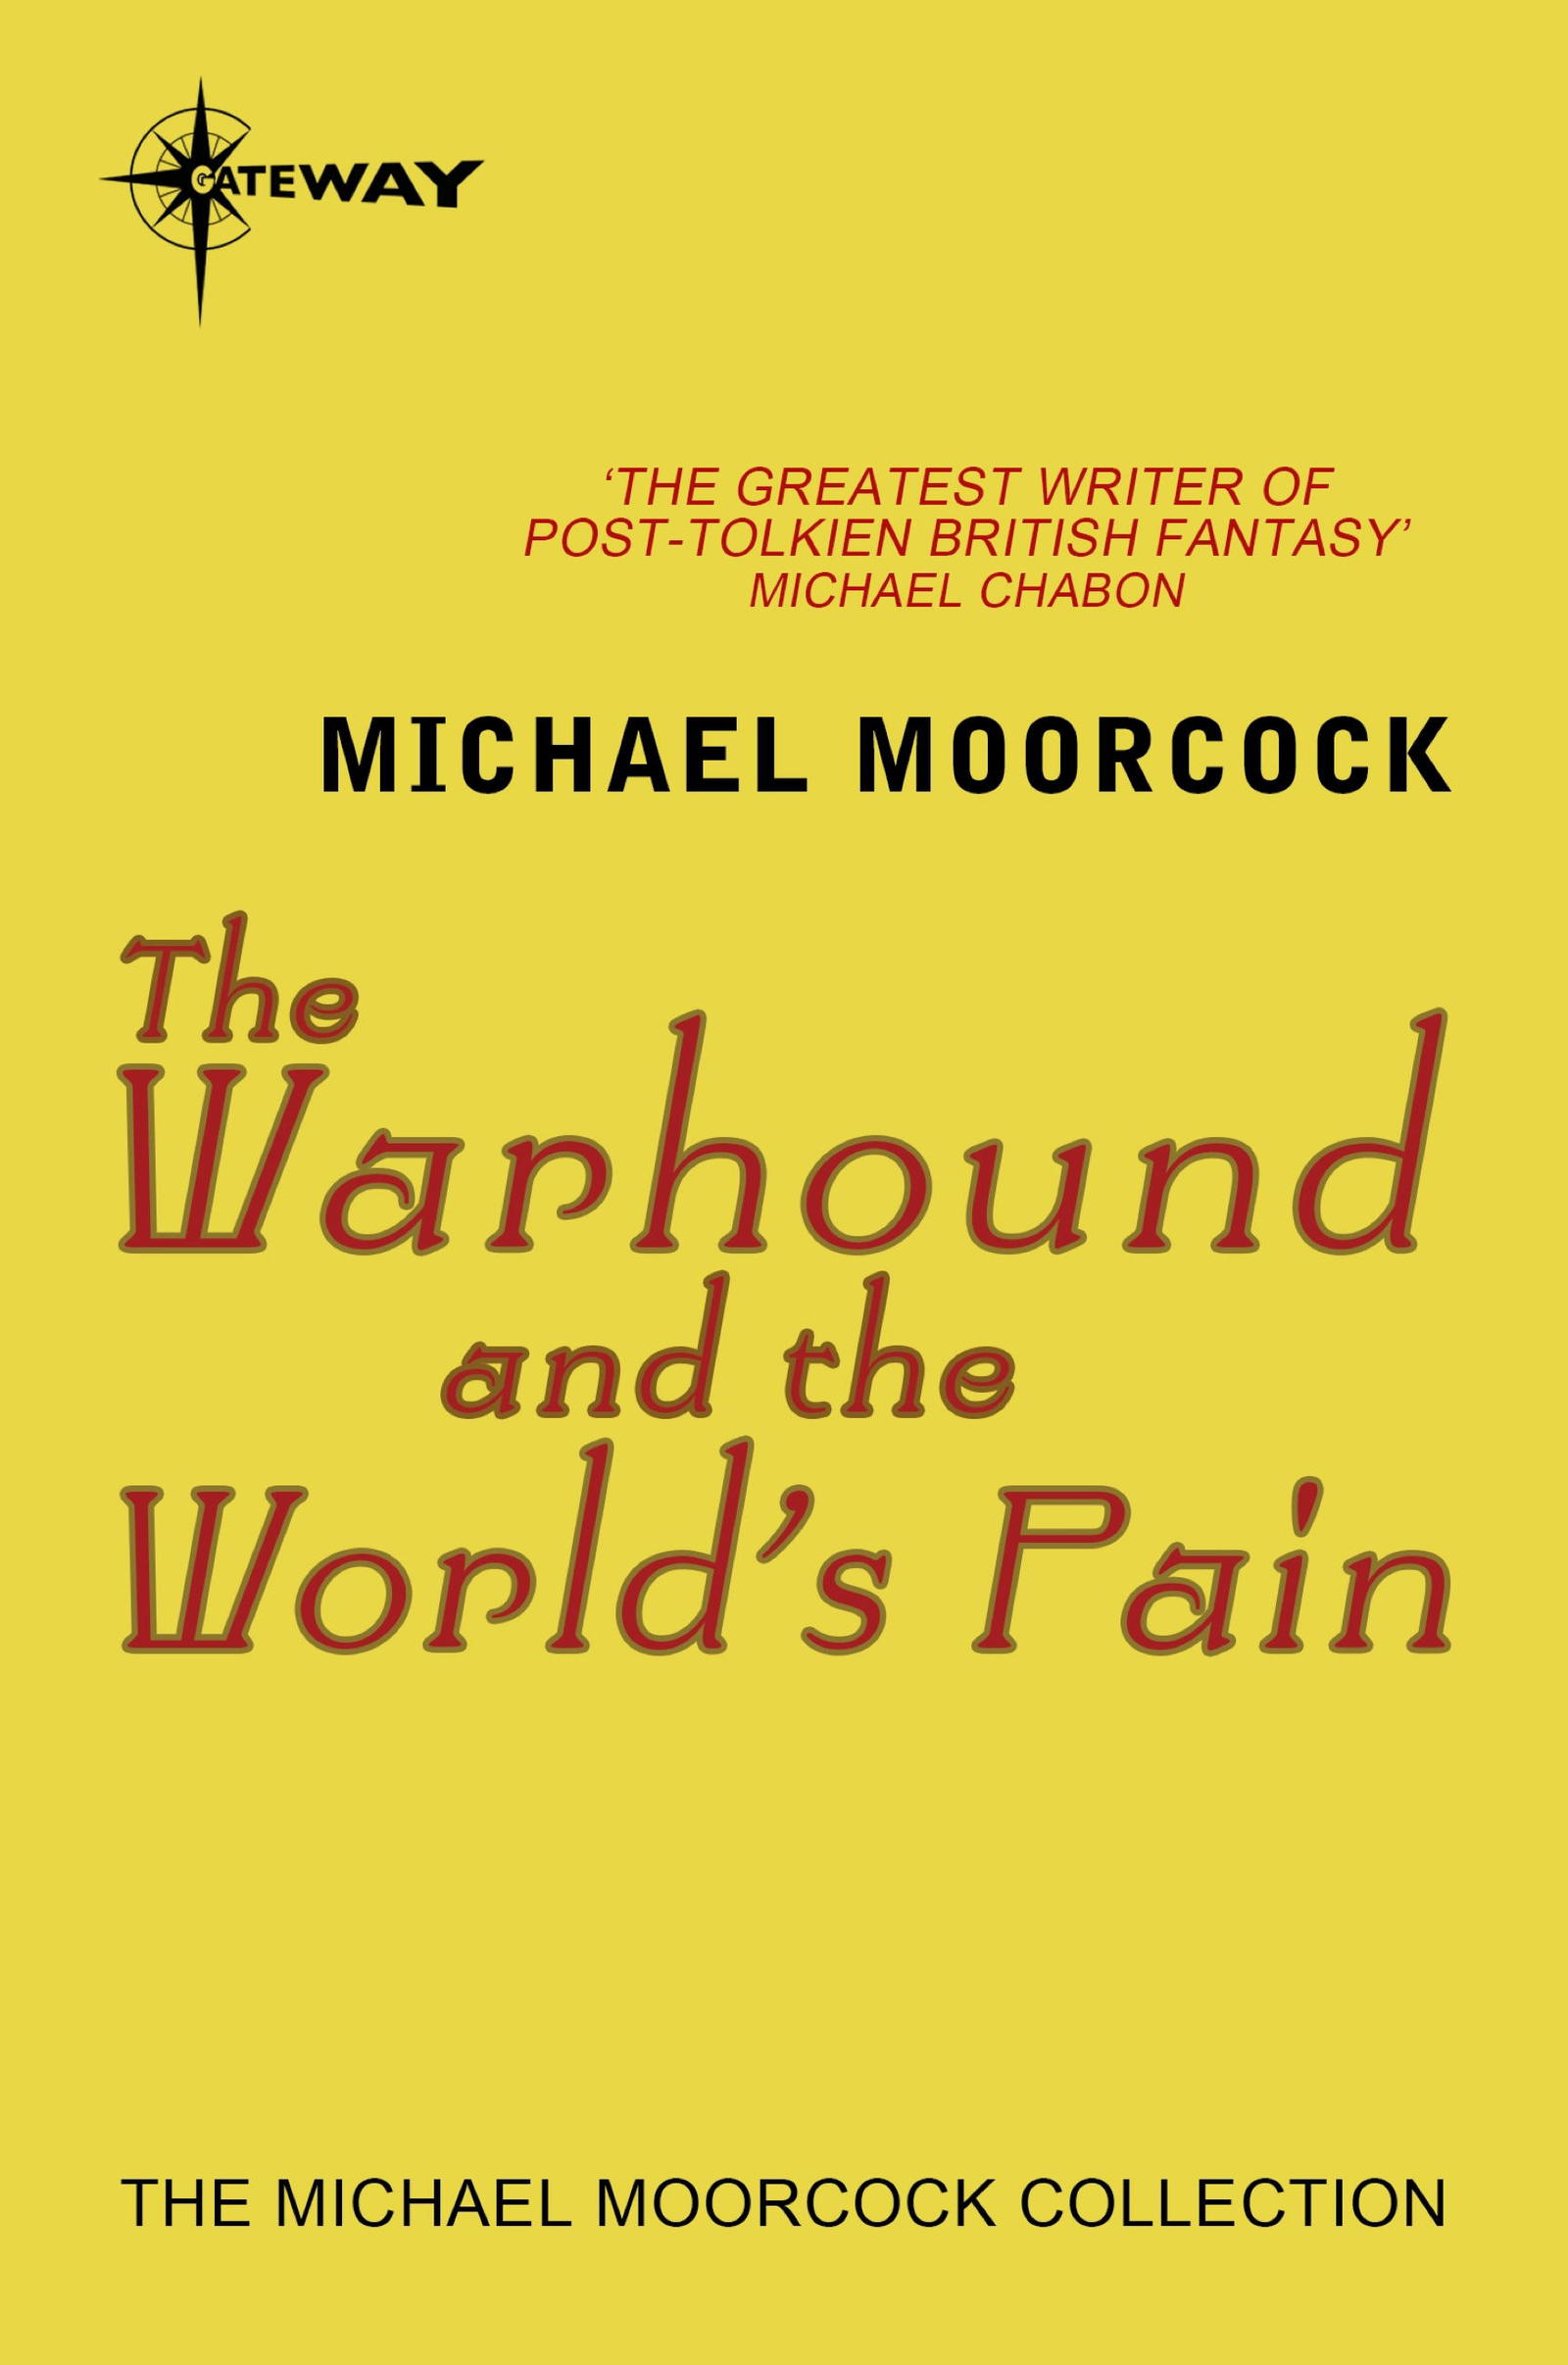 The Warhound and the World's Pain